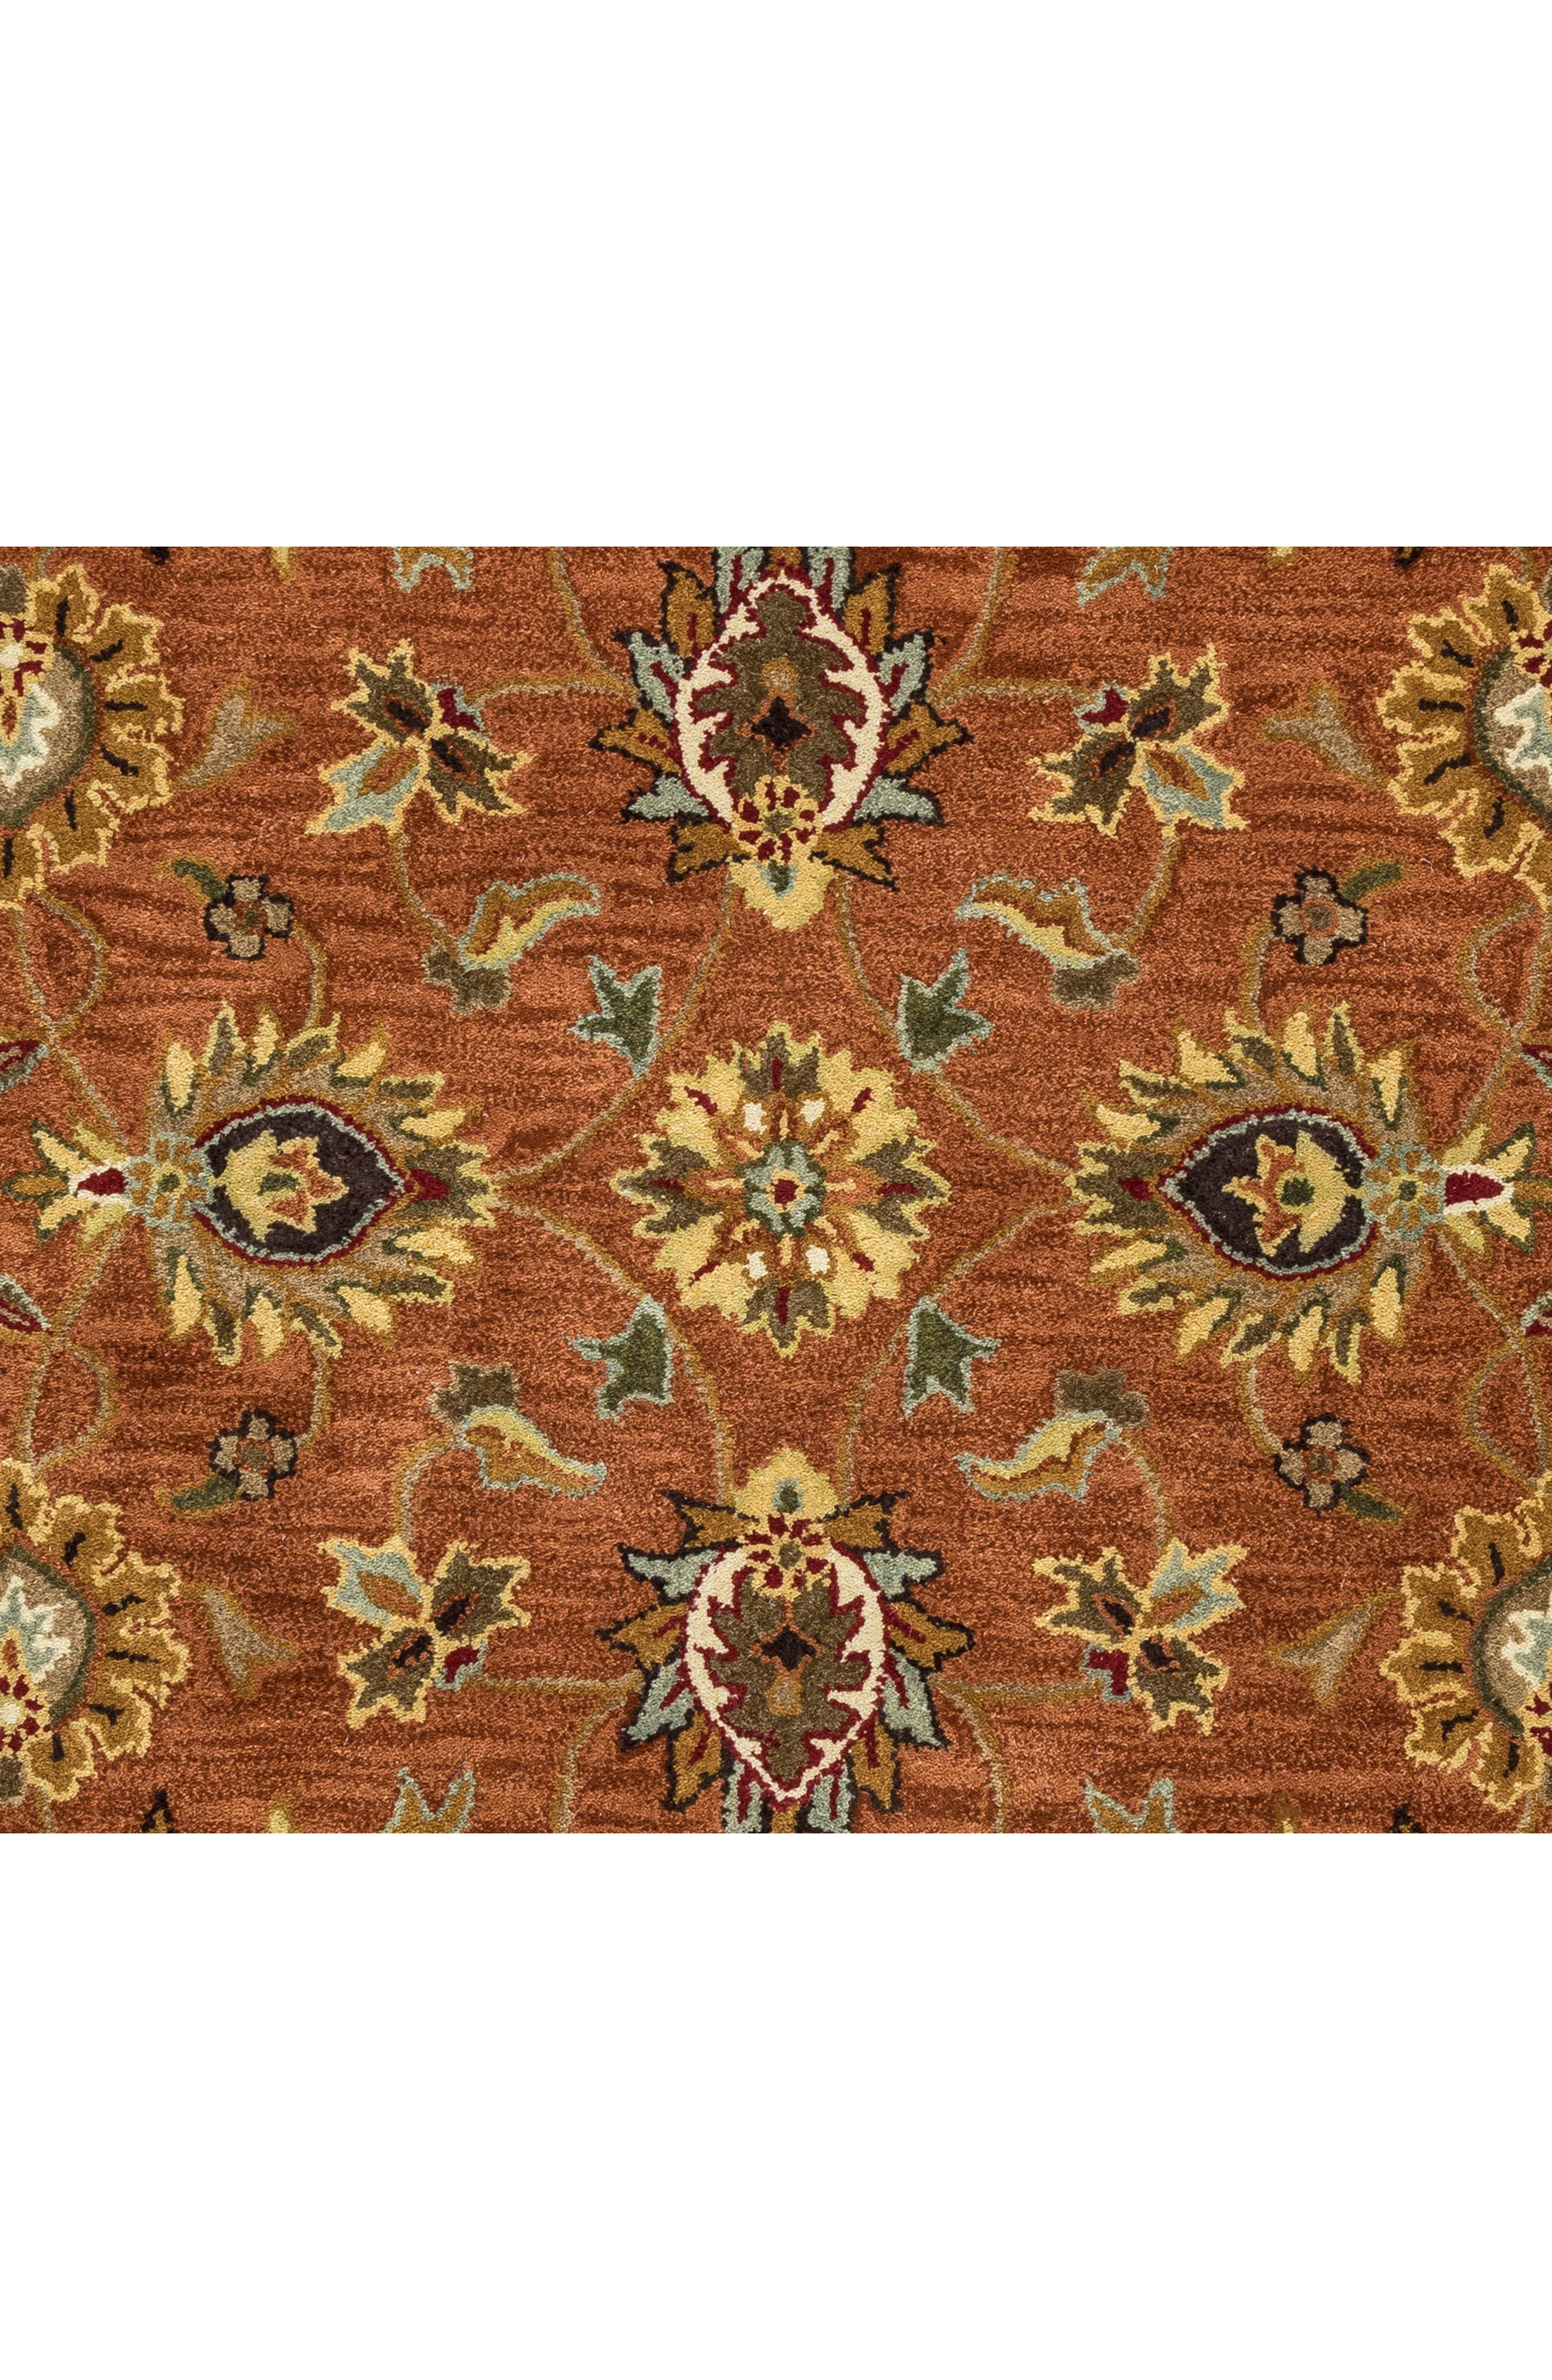 Amalia Hand Tufted Wool Area Rug,                             Alternate thumbnail 3, color,                             220